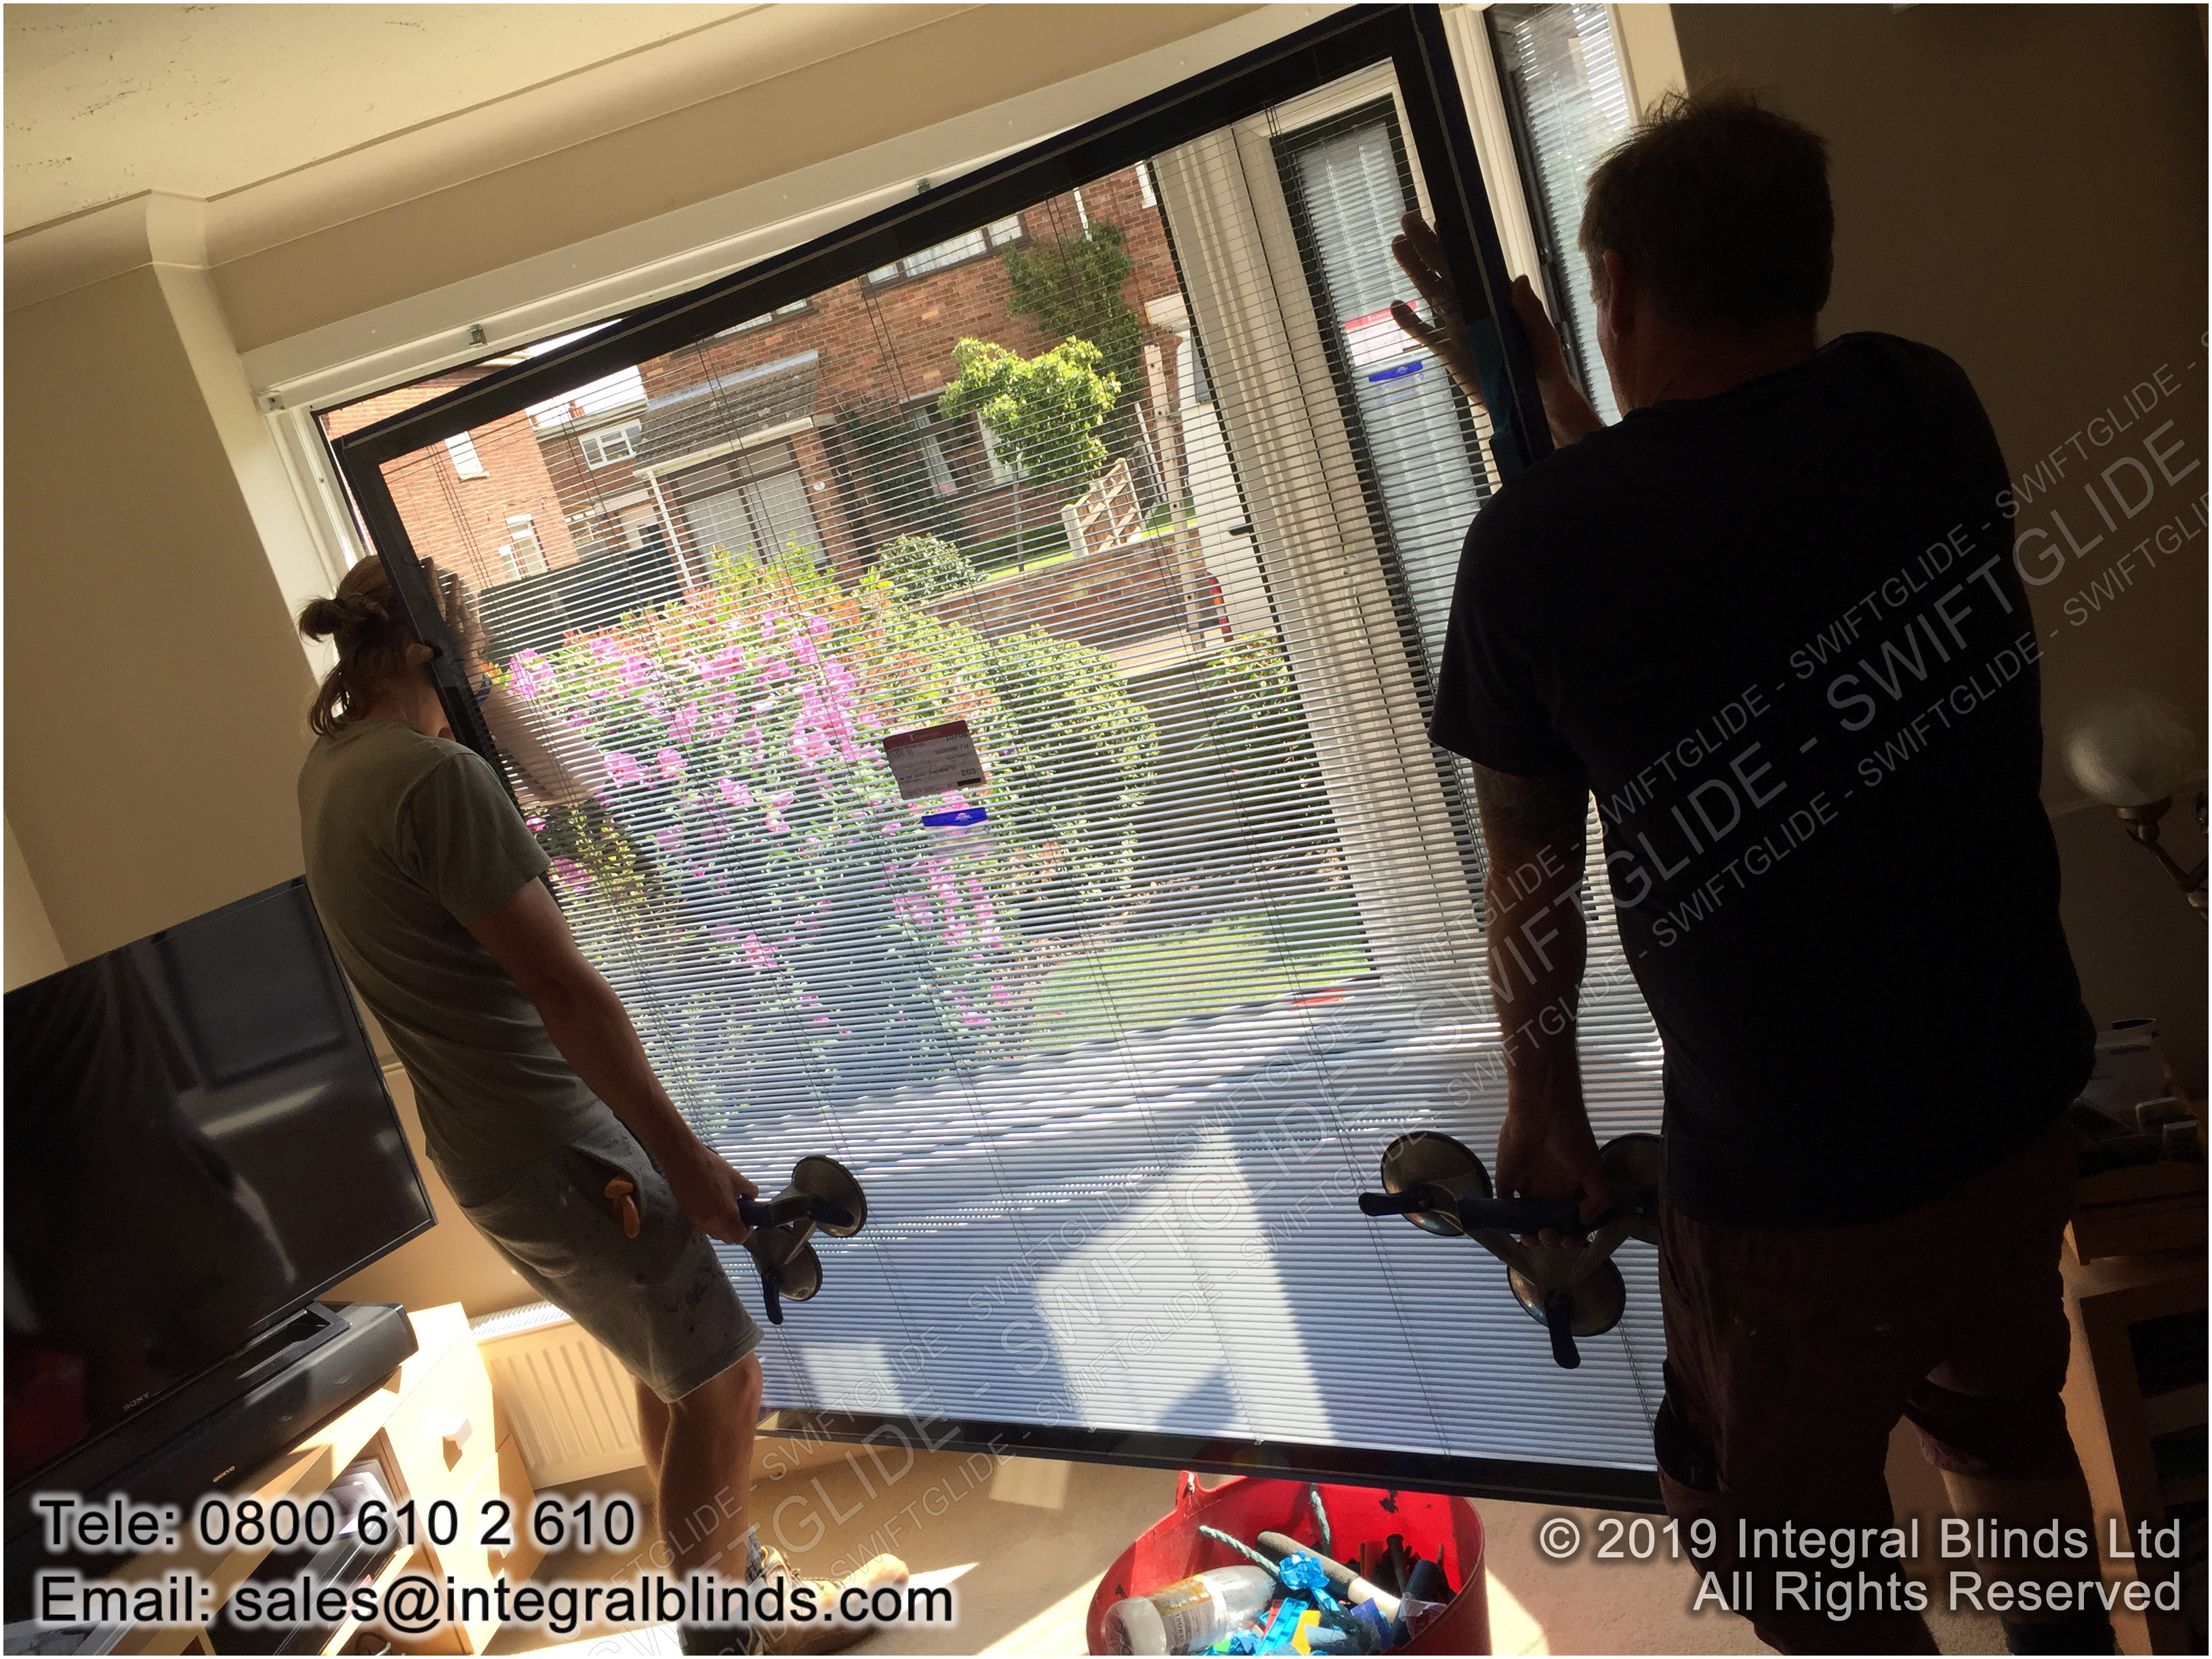 having removed the original sealed units we install the new integral blinds sealed units